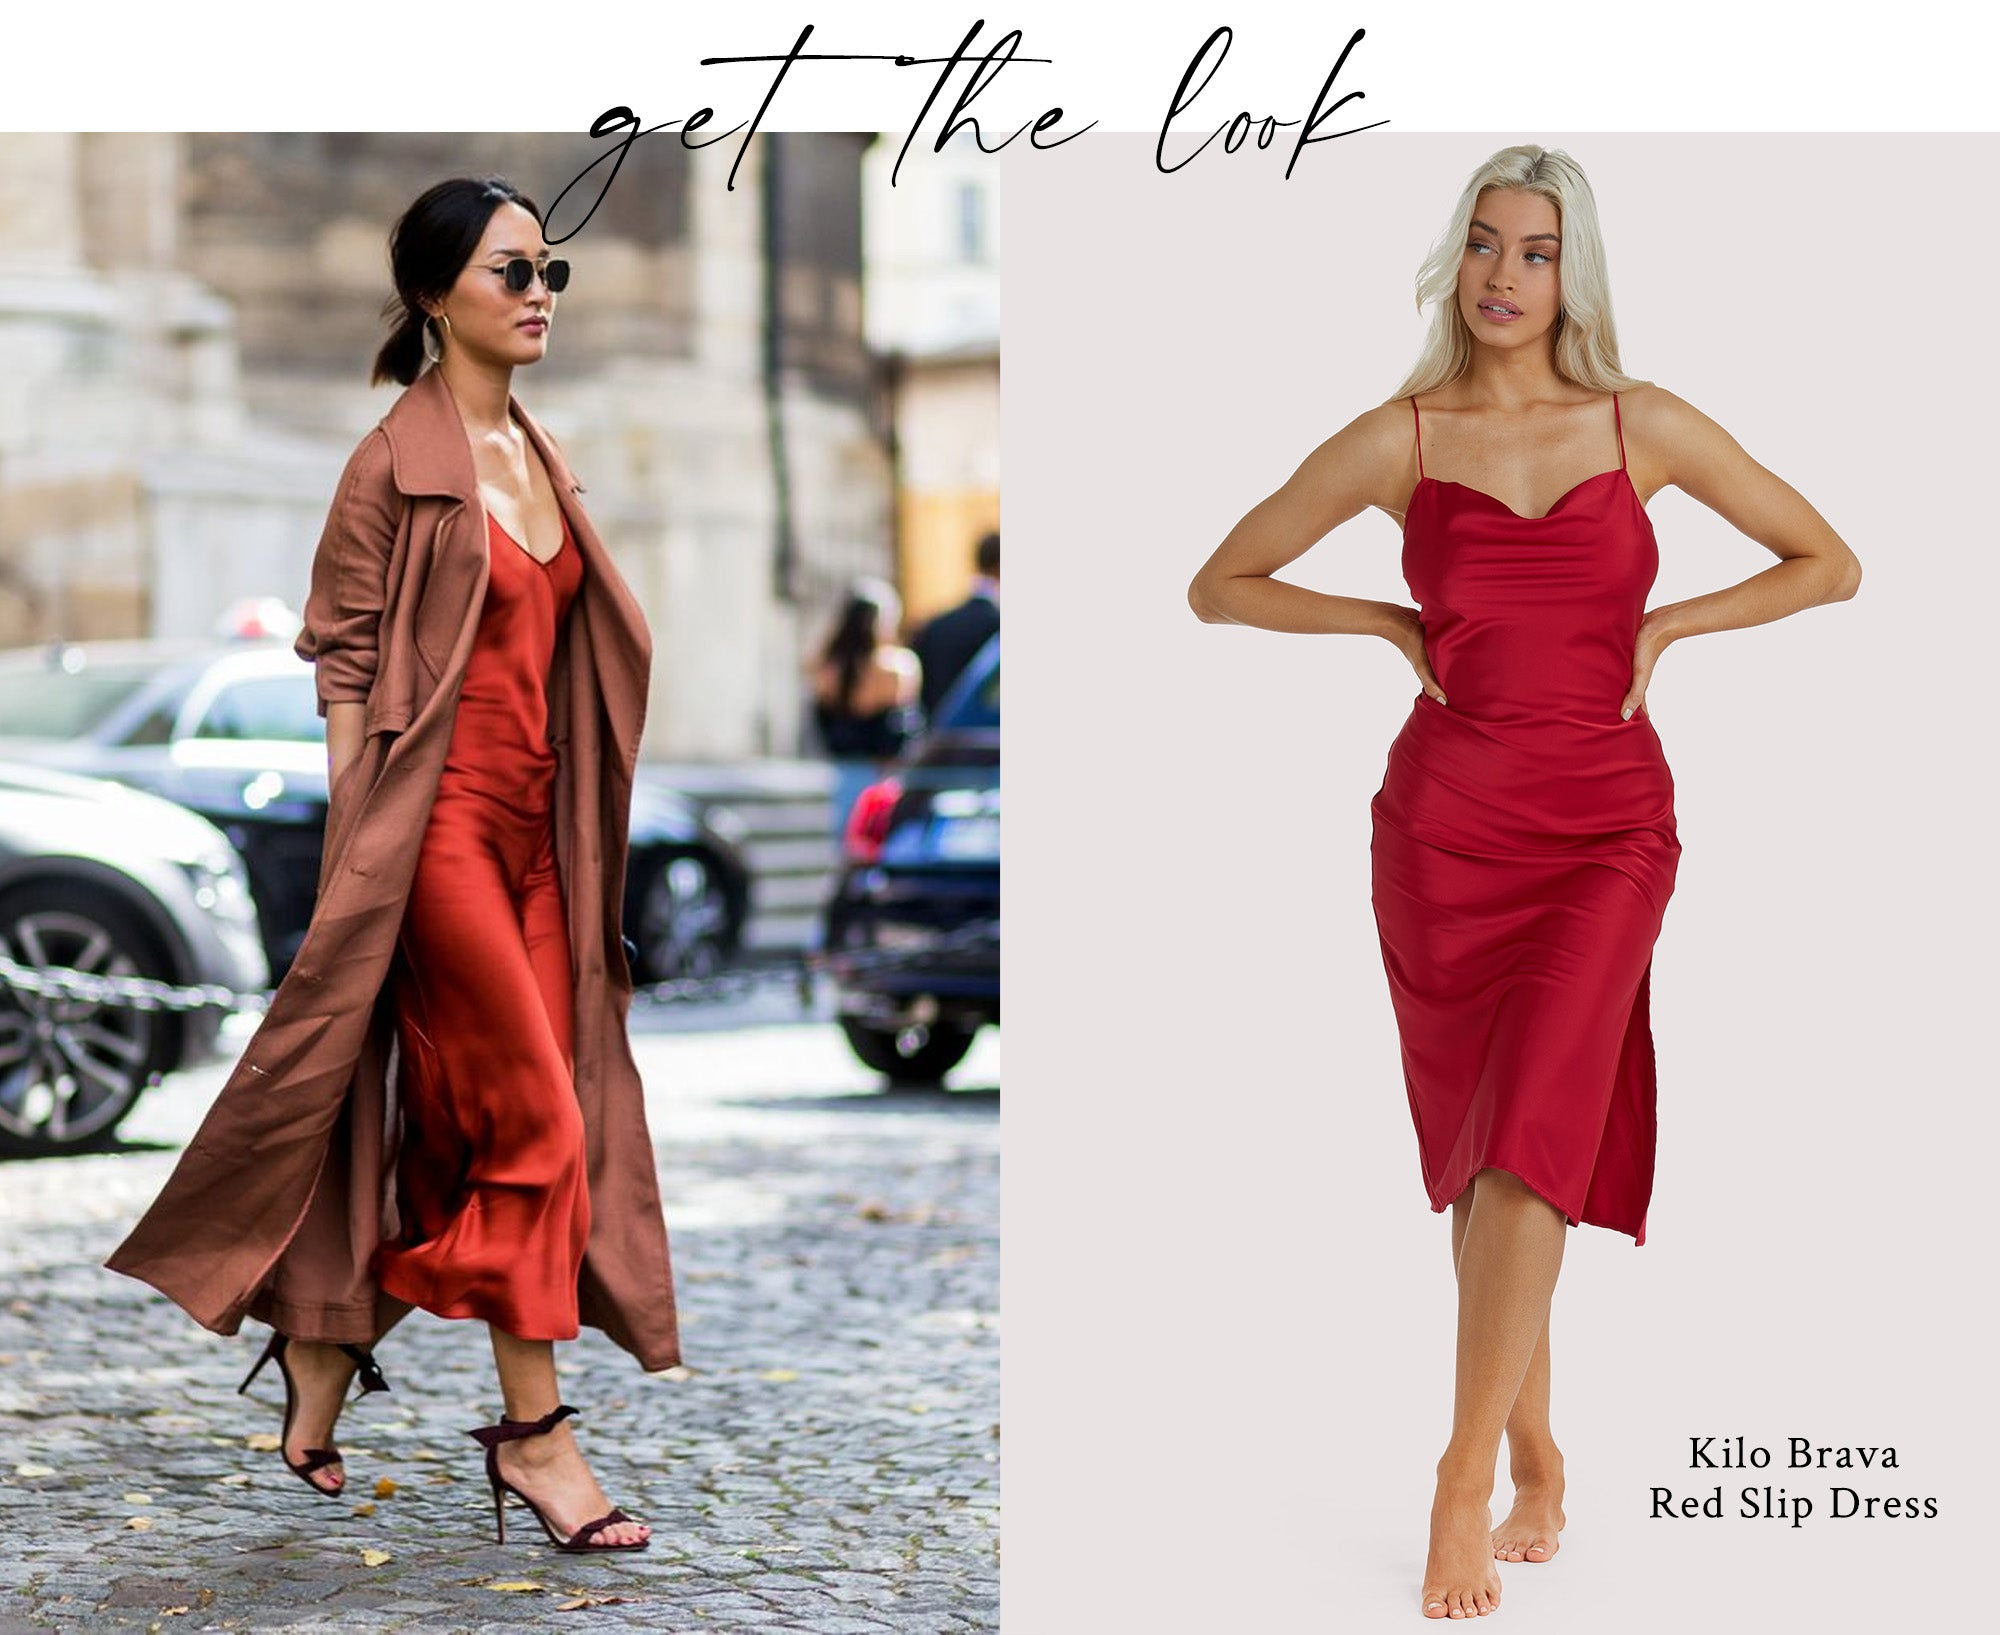 Red slip dress lingerie as outerwear look